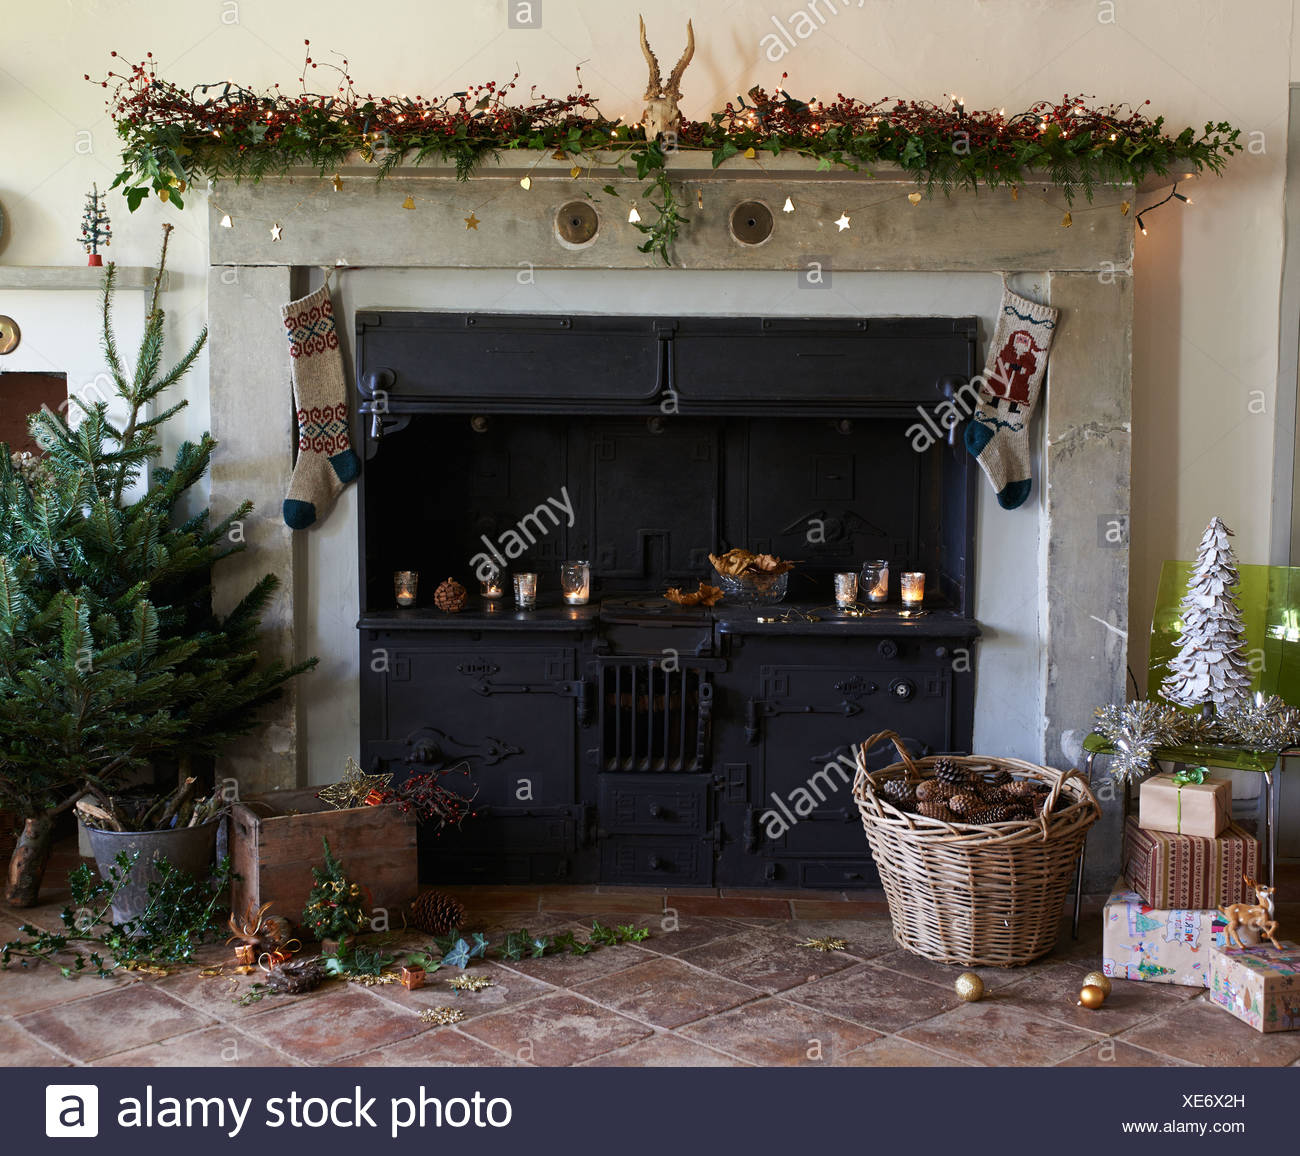 Decorare Caminetto A Natale Camino Decorato Per Il Natale Foto Immagine Stock 284123241 Alamy